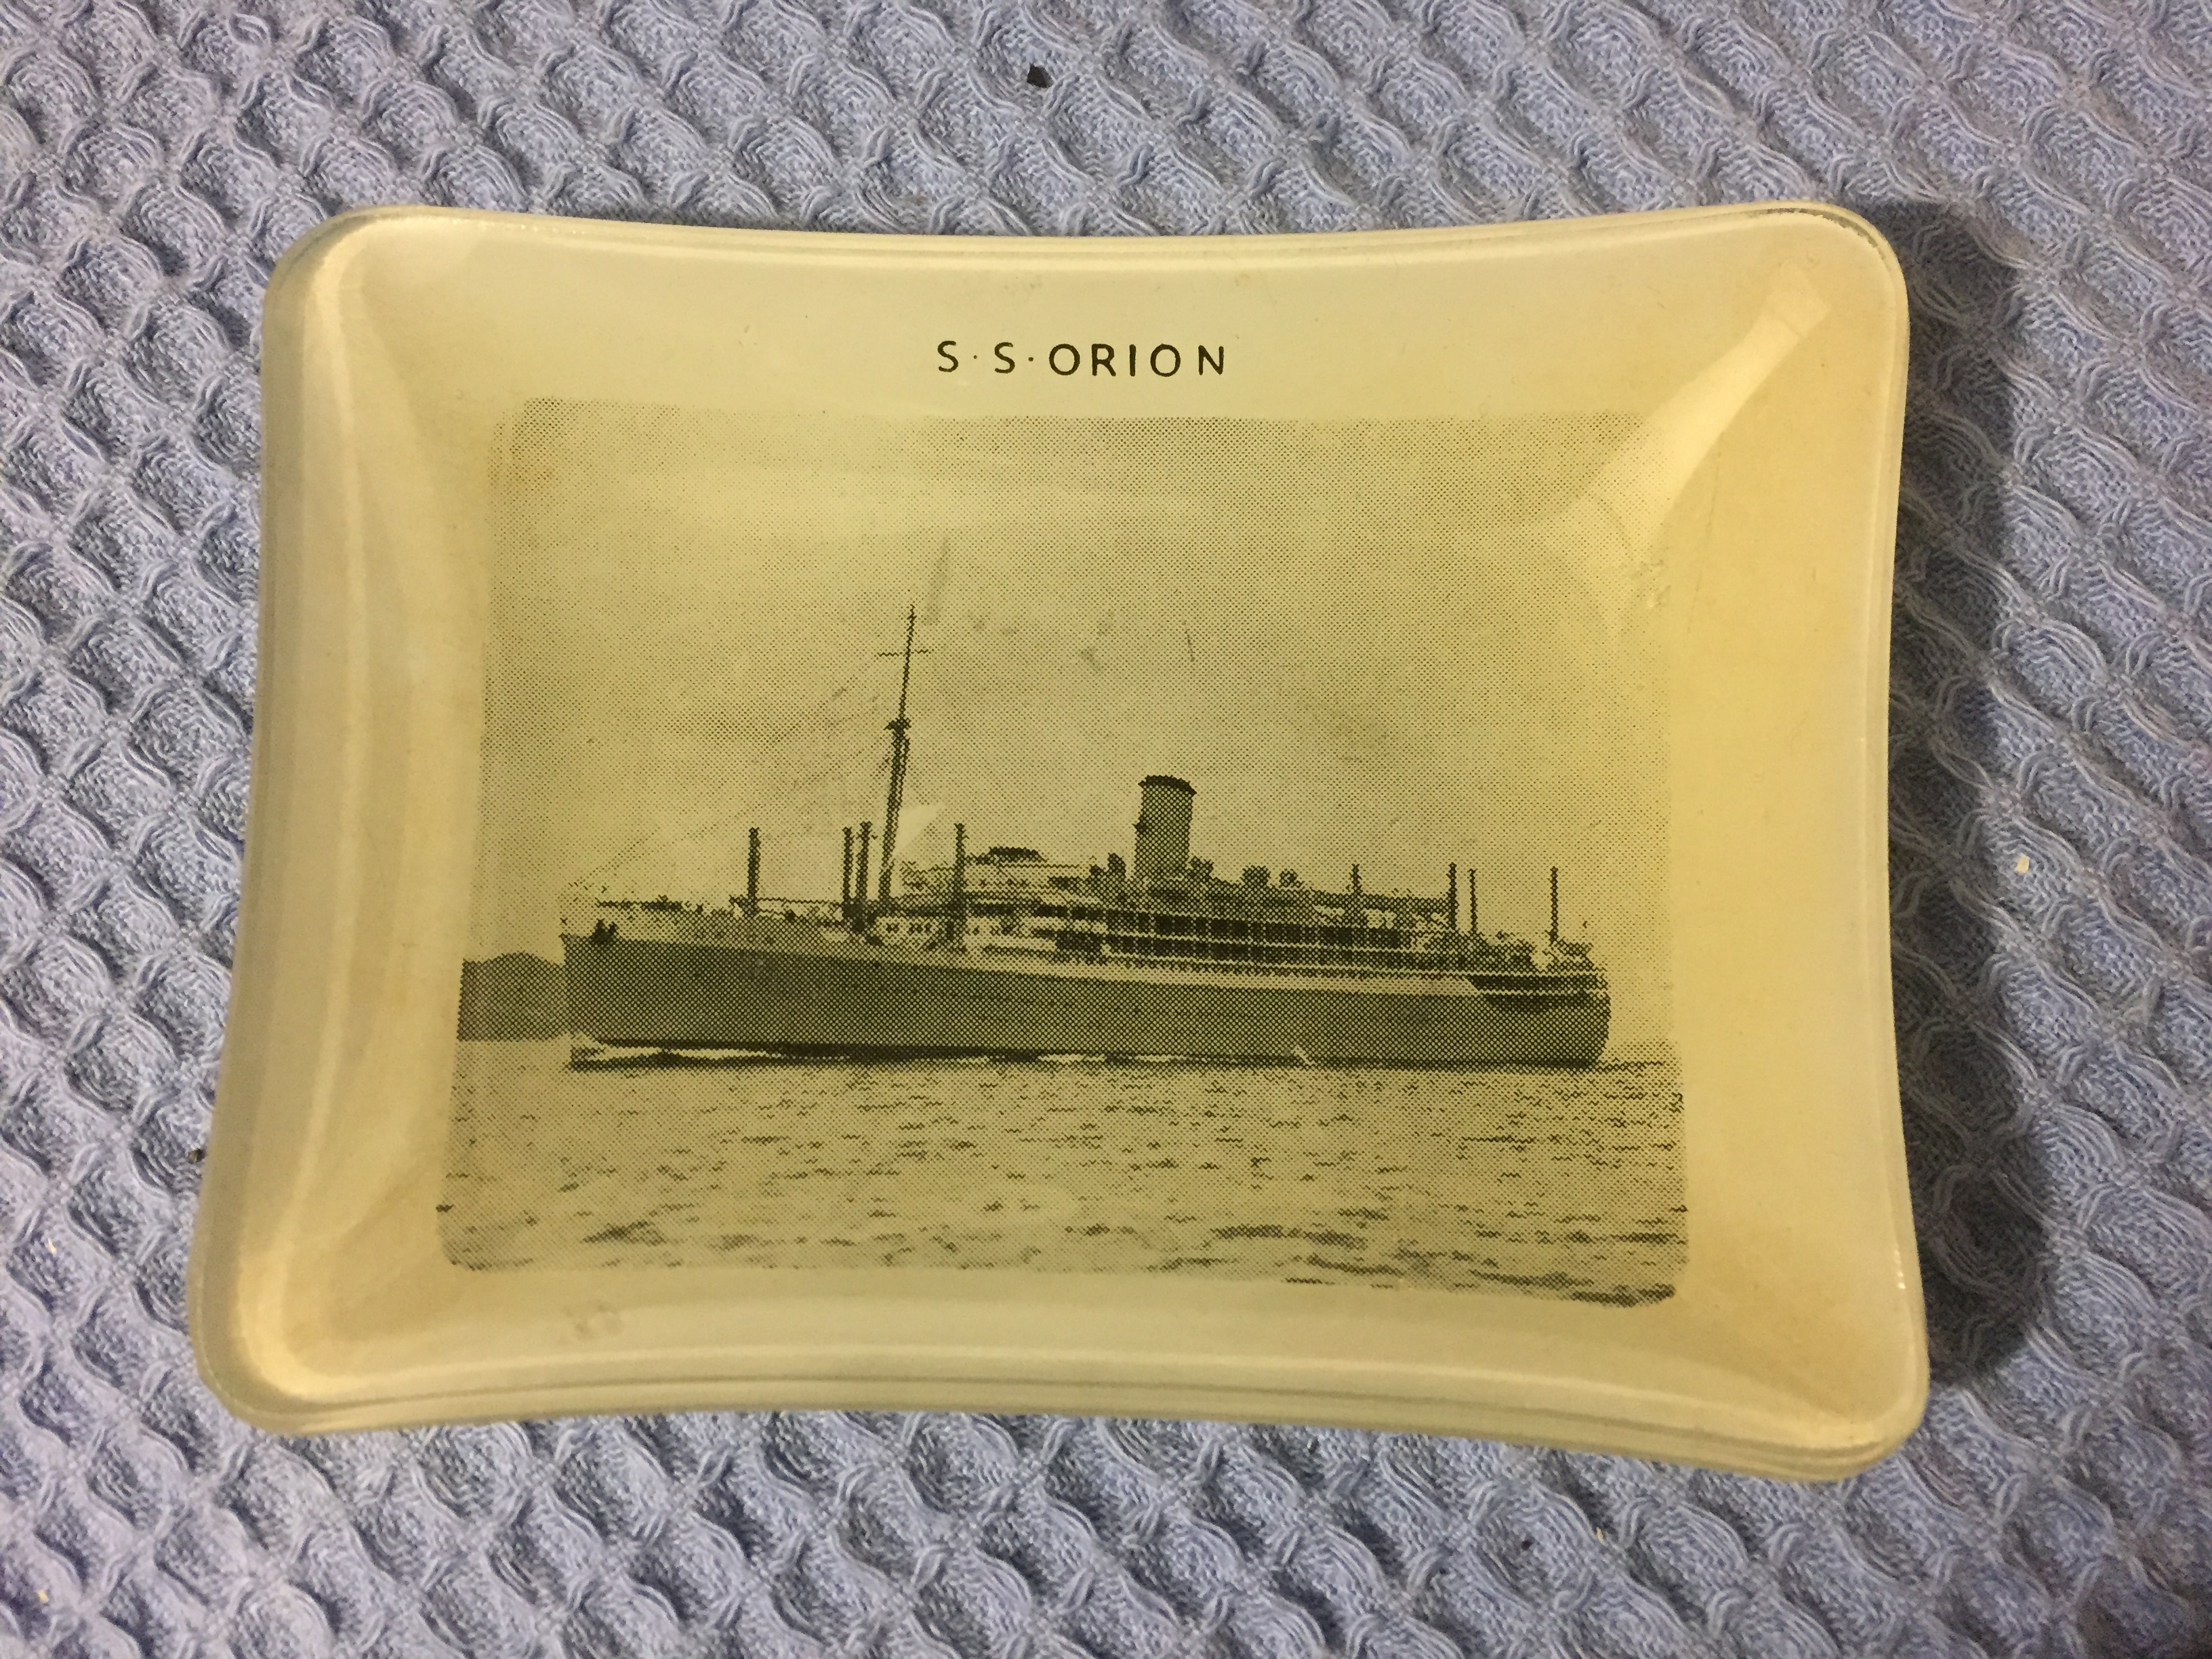 SMOKED GLASS DISH FROM THE VESSEL THE SS ORION